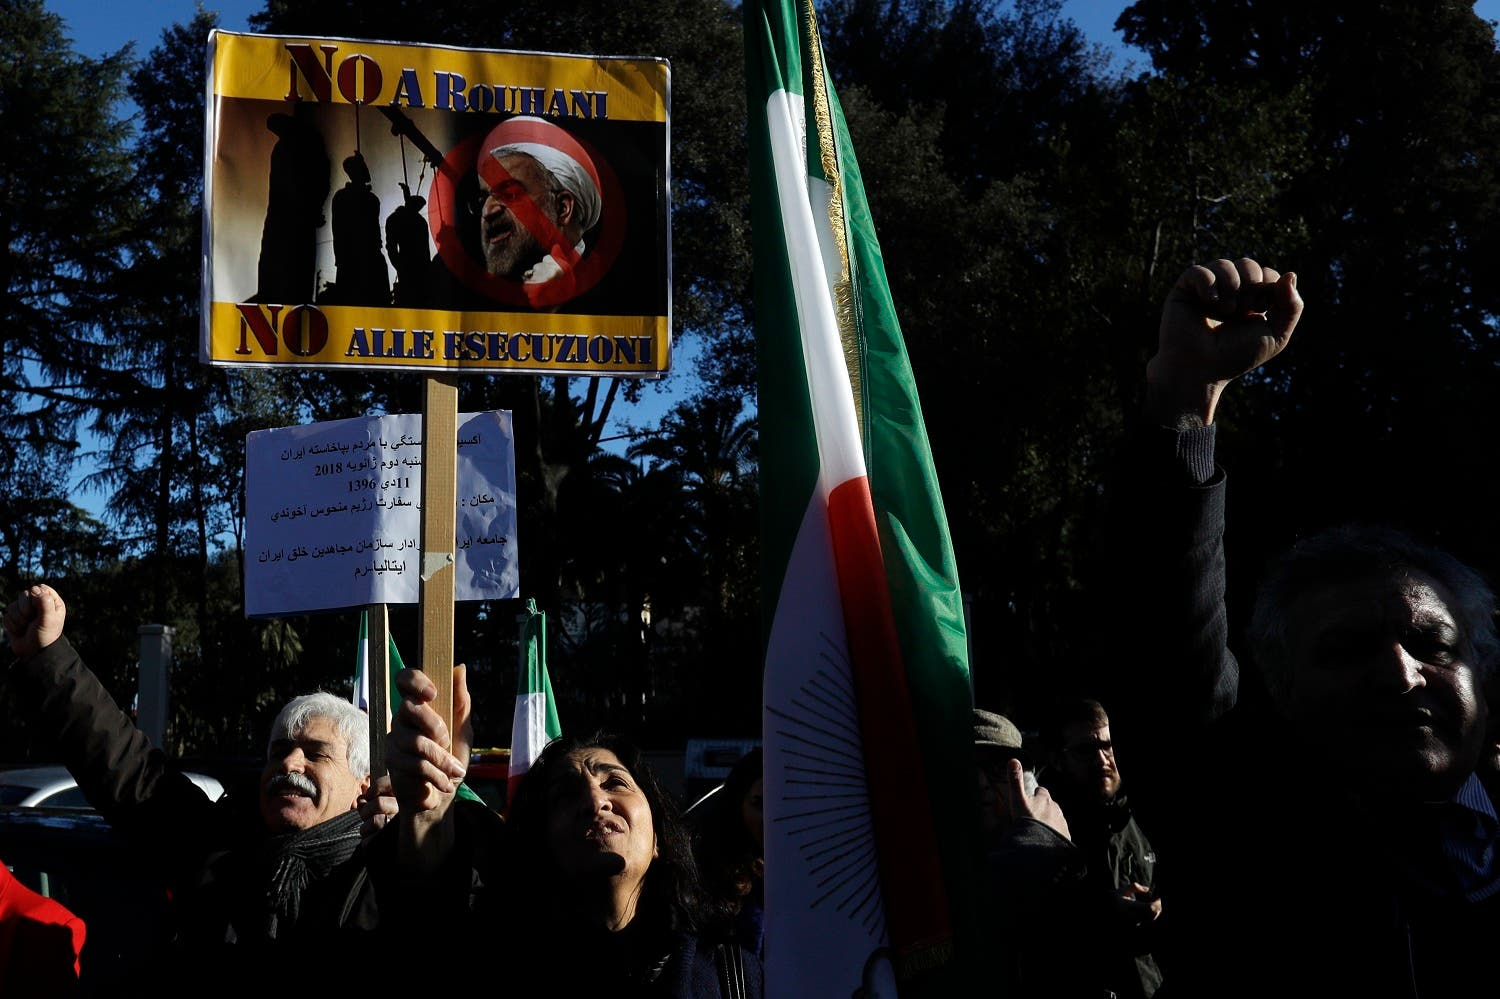 """An Iranian opposition group protester holds up a placard bearing a picture of Iran President Hassan Rouhani and writings reading """"No to Rouhani no to executions"""", during a protest outside the Iran Embassy, in Rome, on Jan. 2, 2018. (AP)"""